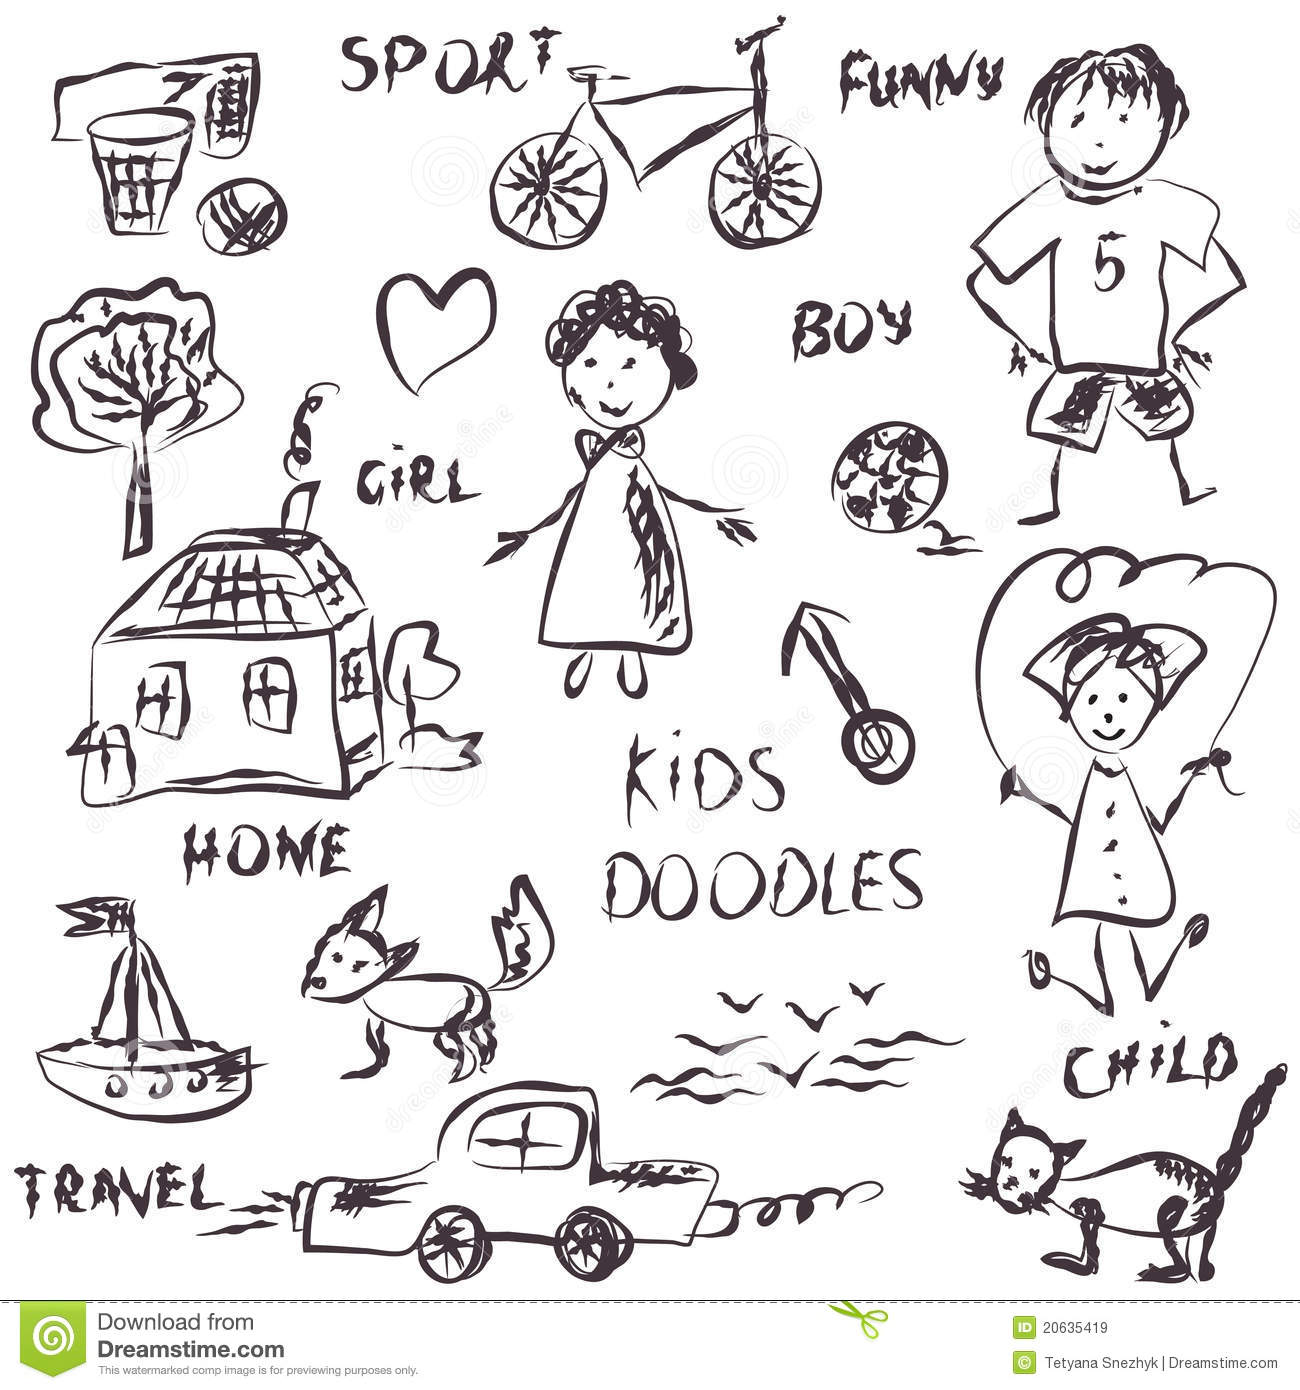 Kids Doodles Cartoon Royalty Free Stock Images